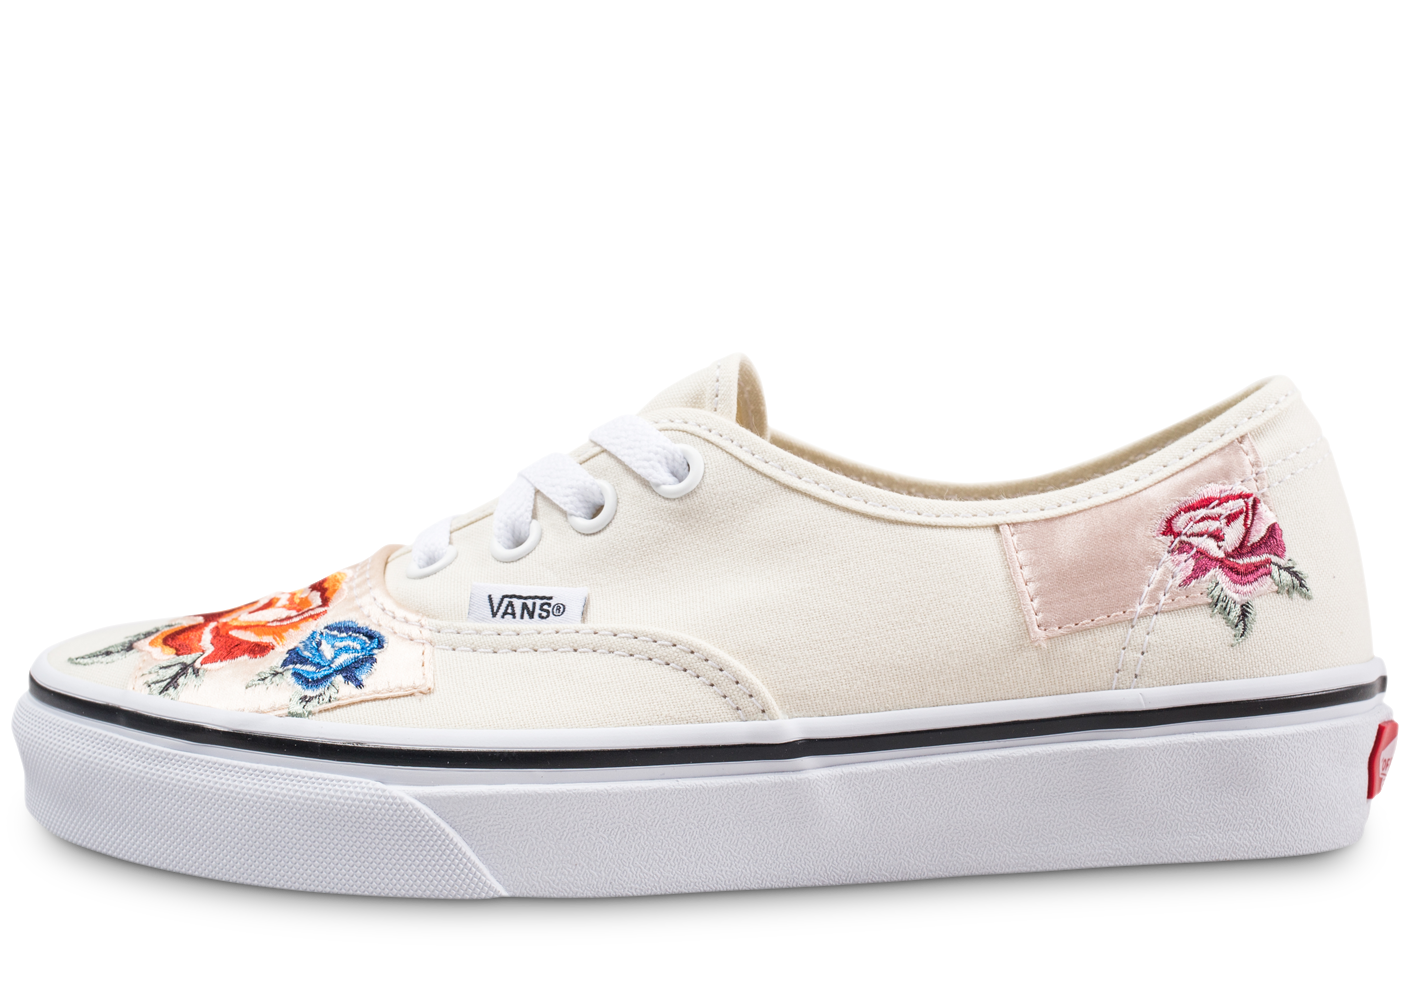 Vans Authentic Patchwork Satin Beige Femme Skate